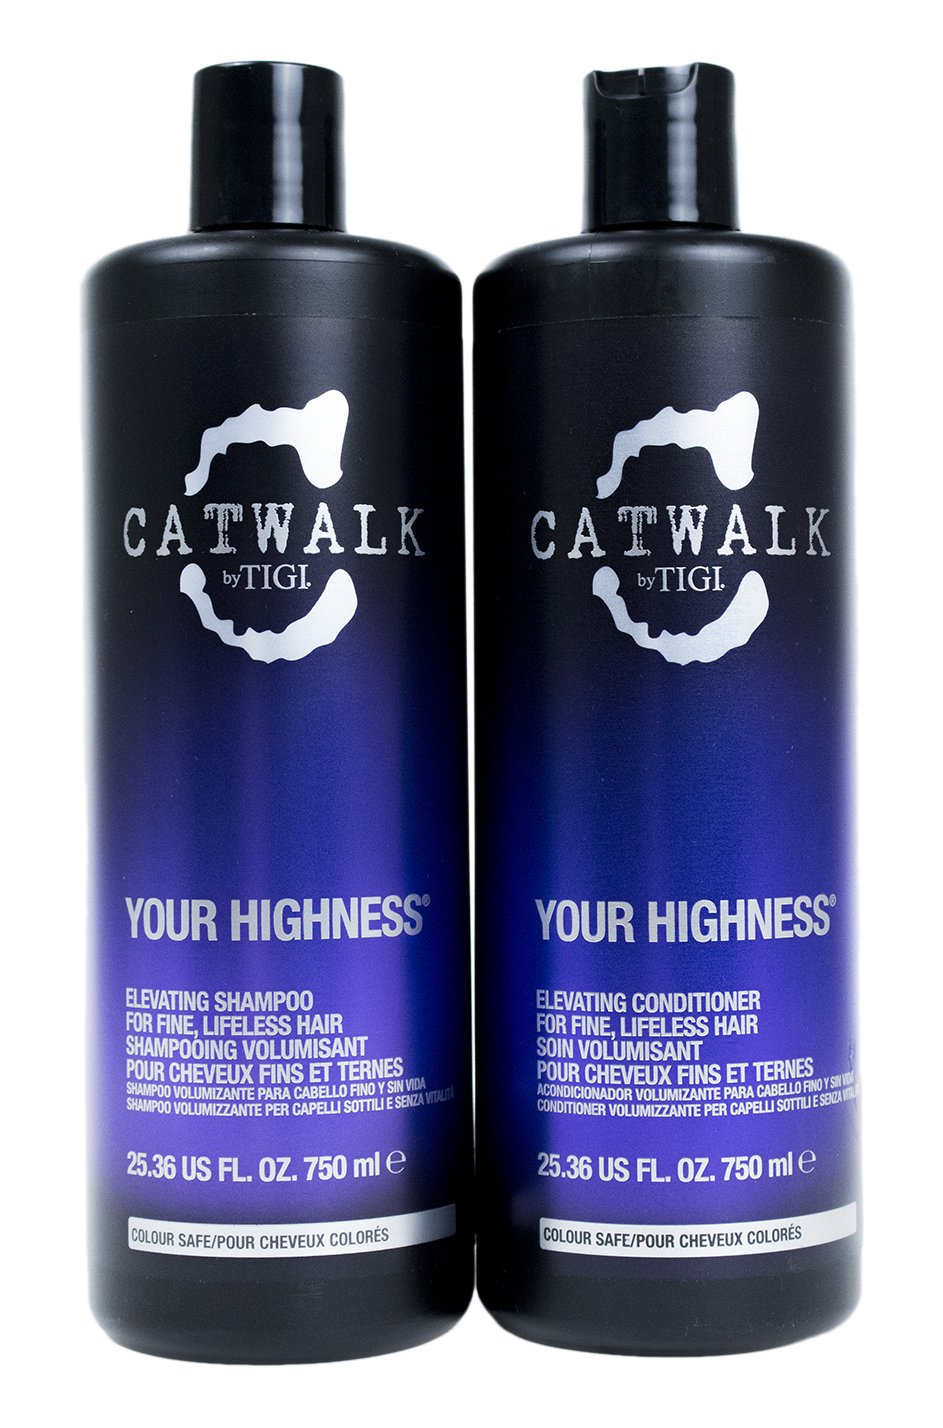 Catwalk Shampoo and Conditioner Your Highness  25.36 Fluid Ounce